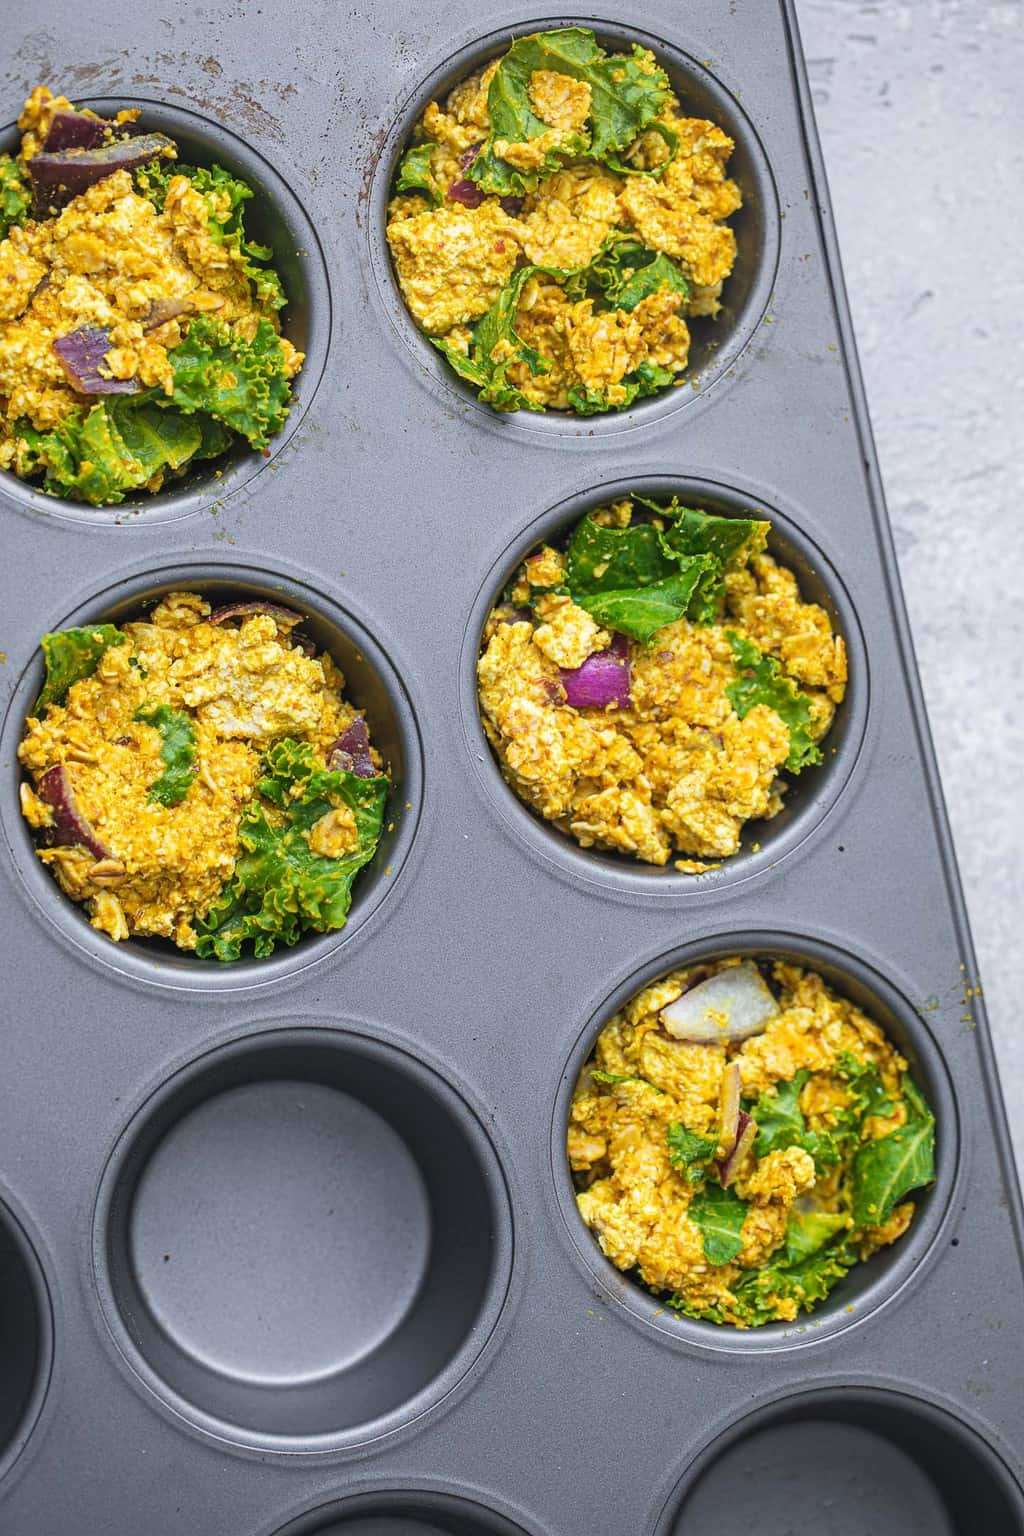 Muffin tray with vegan breakfast muffin batter